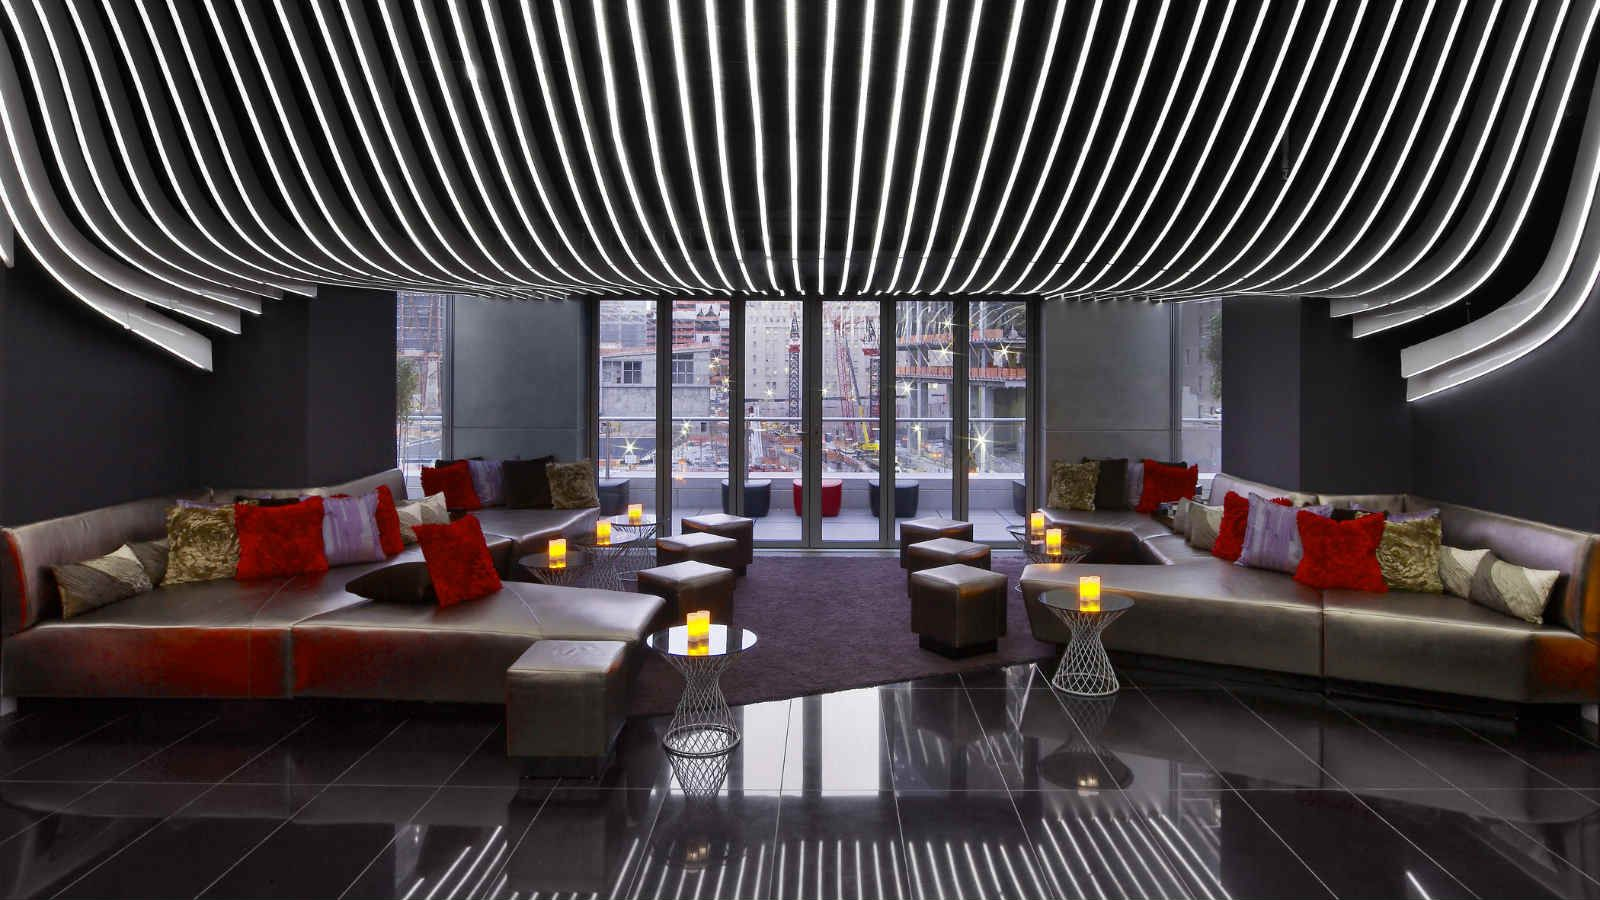 W New York Downtown Hotel Photo Gallery Downtown Living Downtown Hotels Living Room Bar